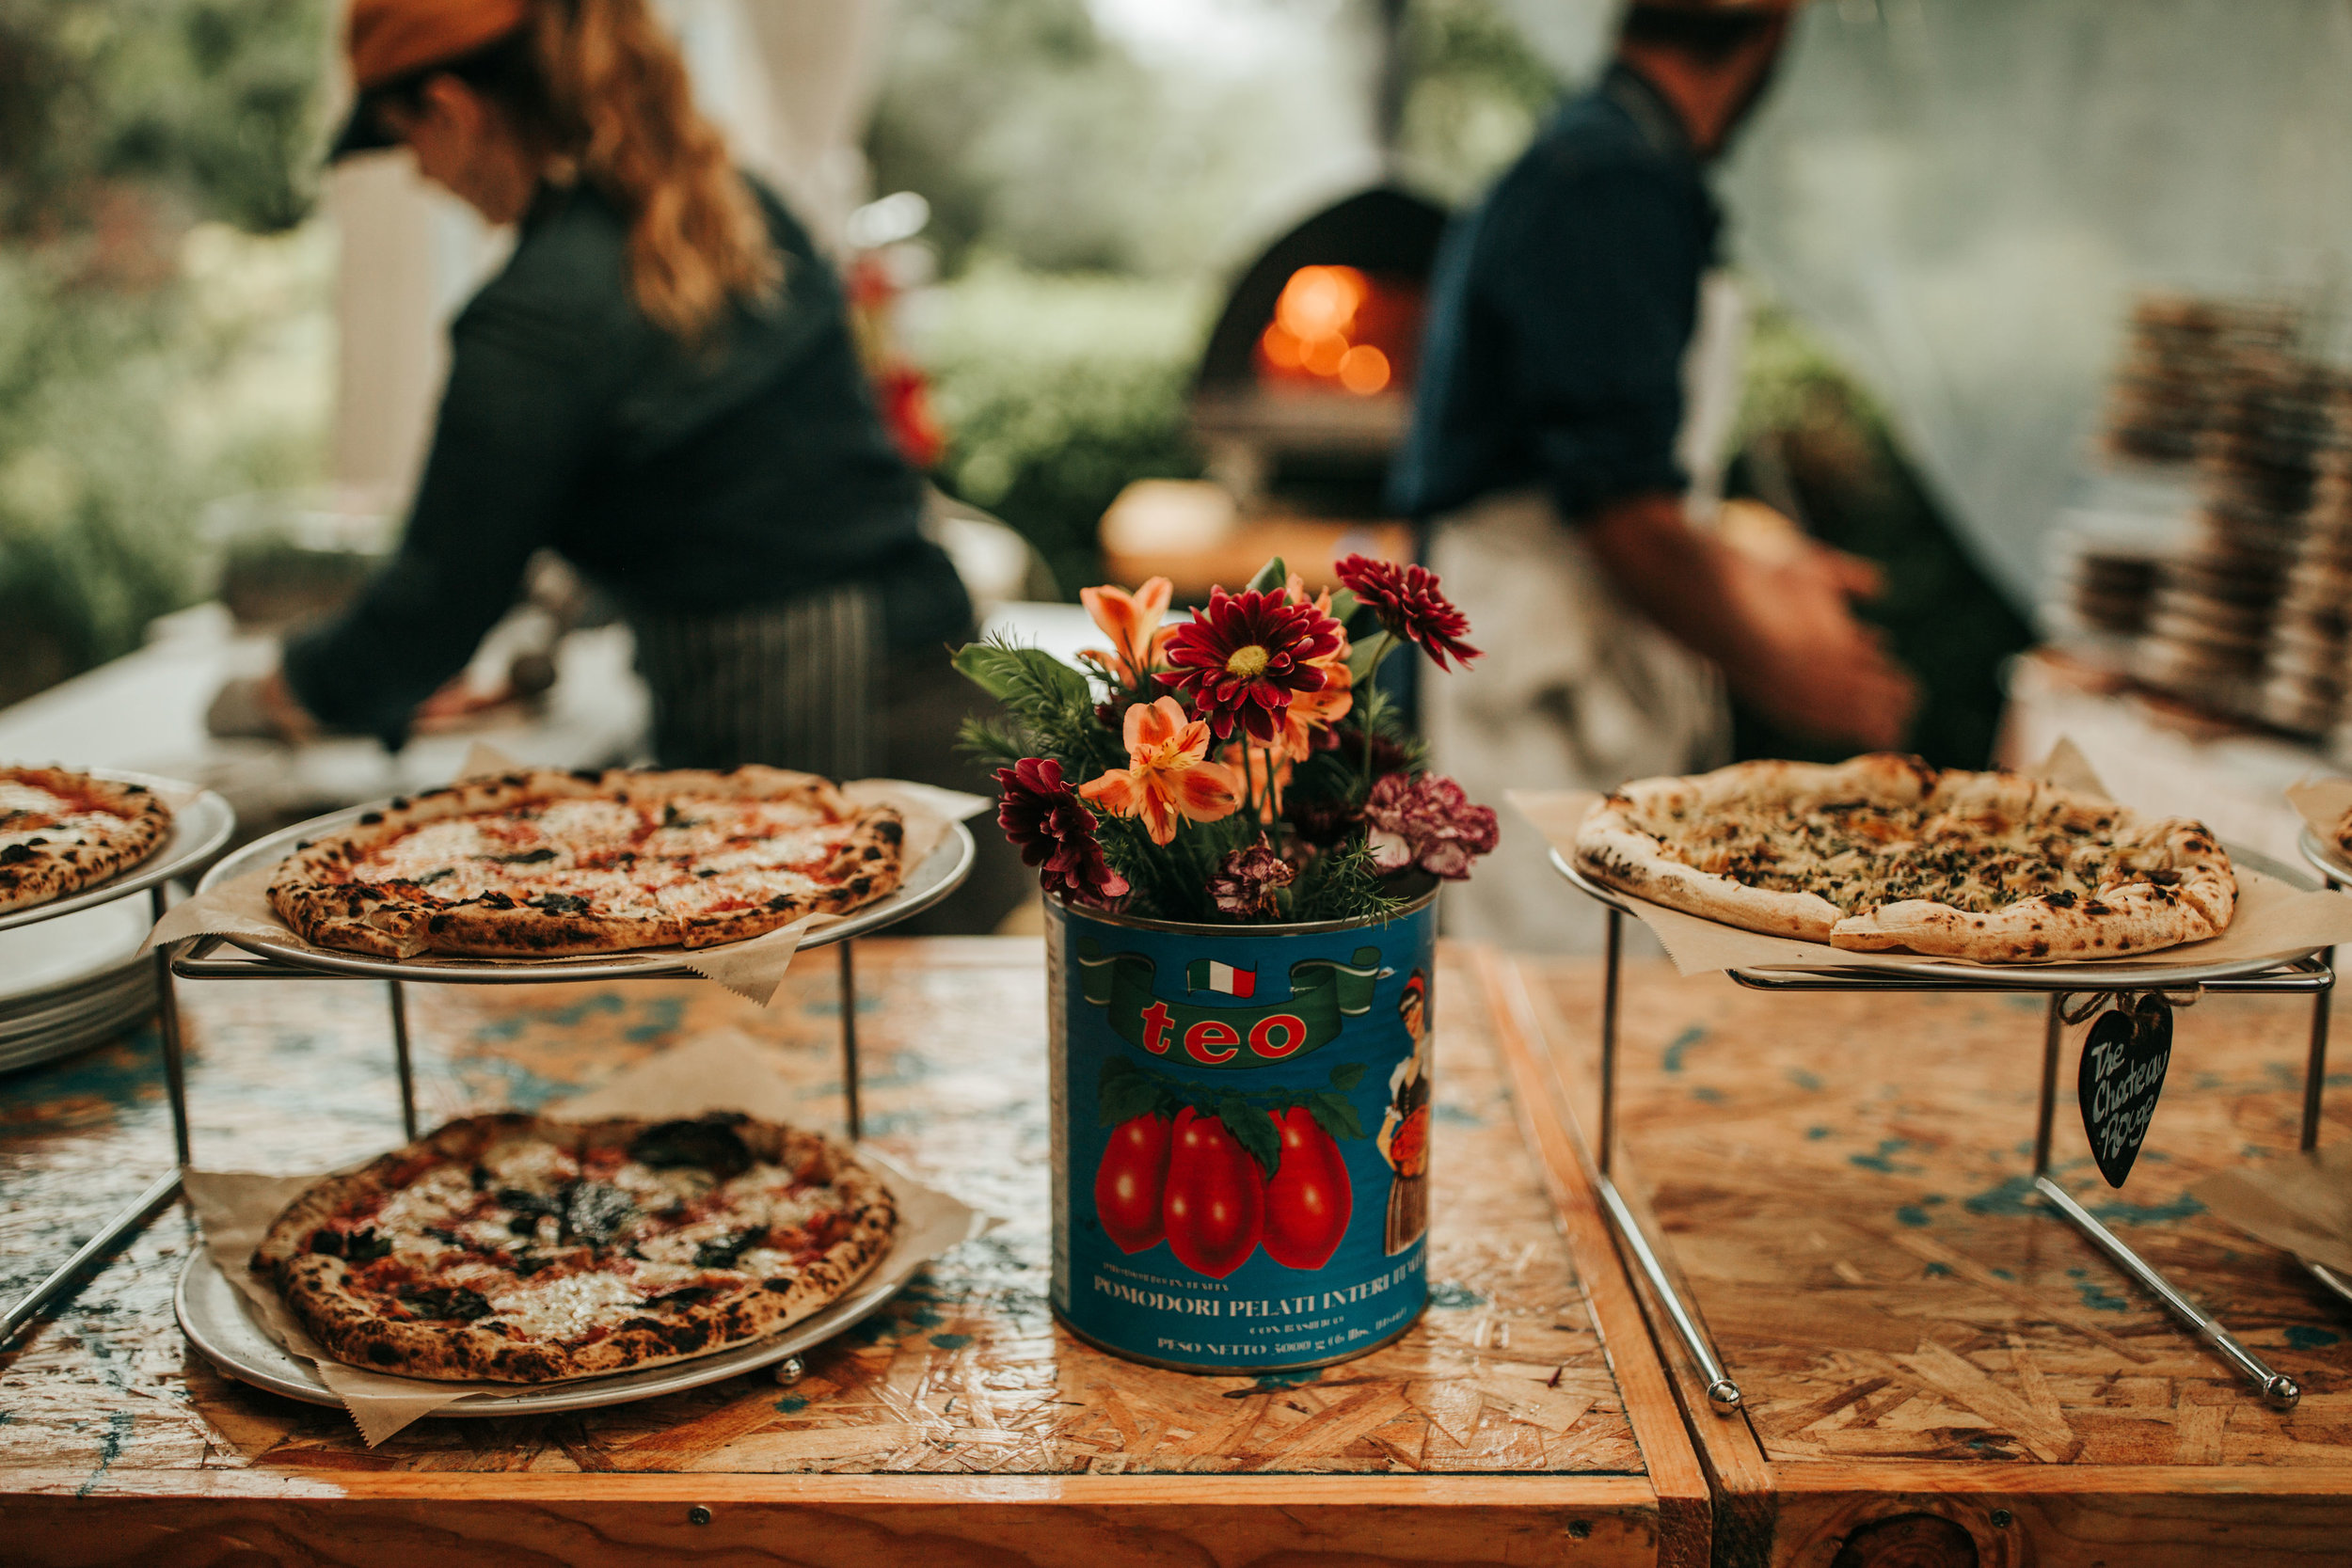 """Huria's Woodfired Pizza Pop-Up - Catch us at our weekly pop-up on Tuesdays and Wednesdays, from 1-7pm, exclusively at Stumptown Brewery in Guerneville, CA. Below is our pop-up menu, offering a variety of 10.5"""" pizza Napoletana."""